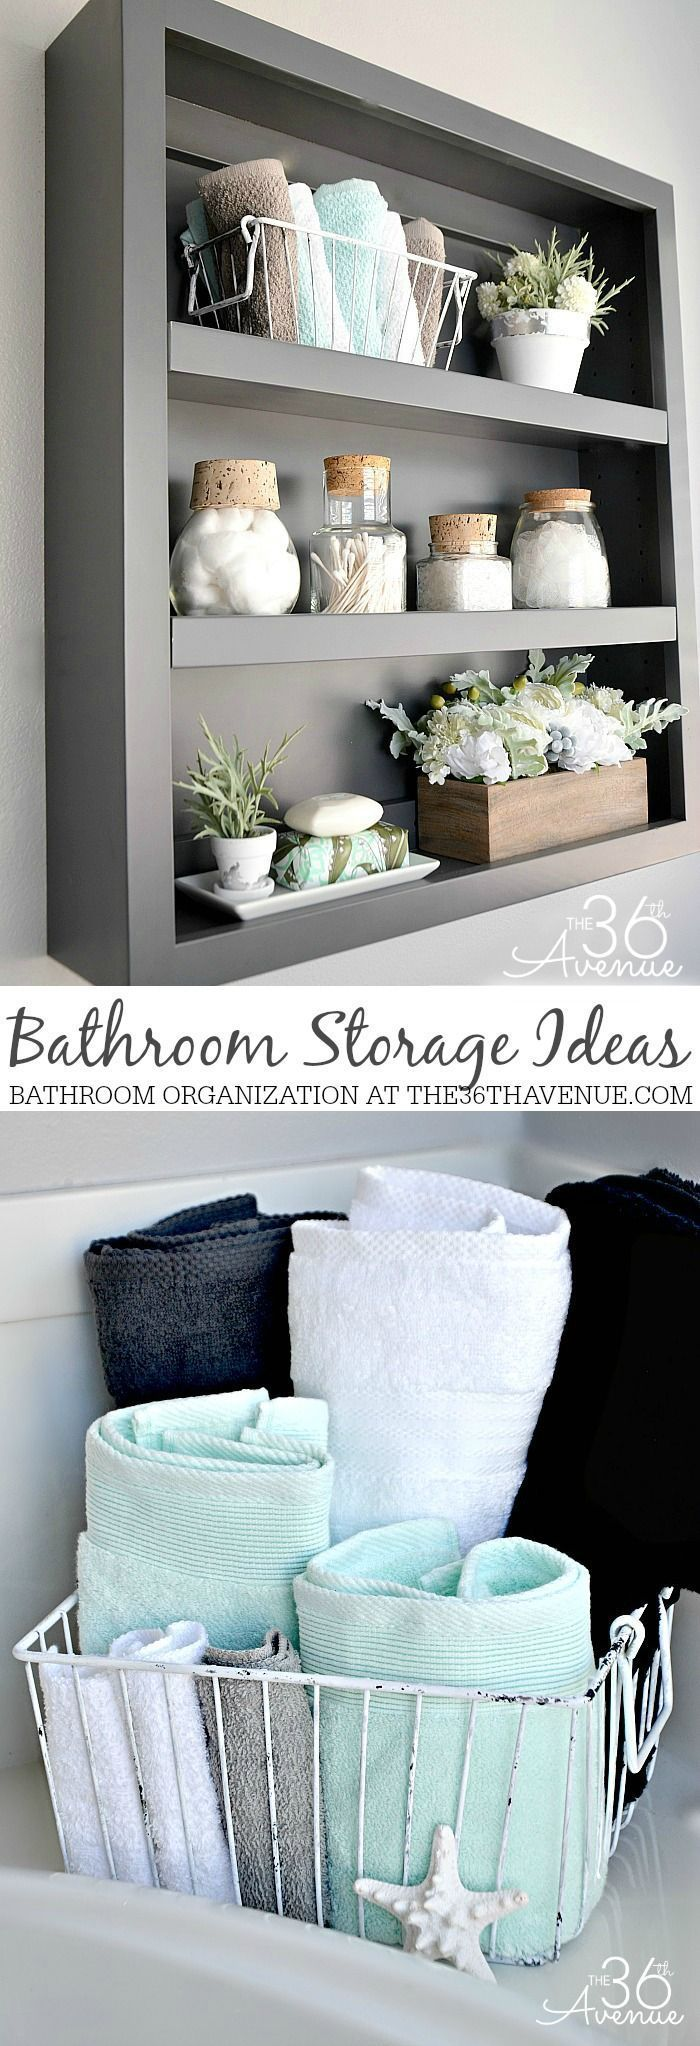 Bathroom Storage and Organization Ideas at the36thavenue.com #cleaning # bathroom